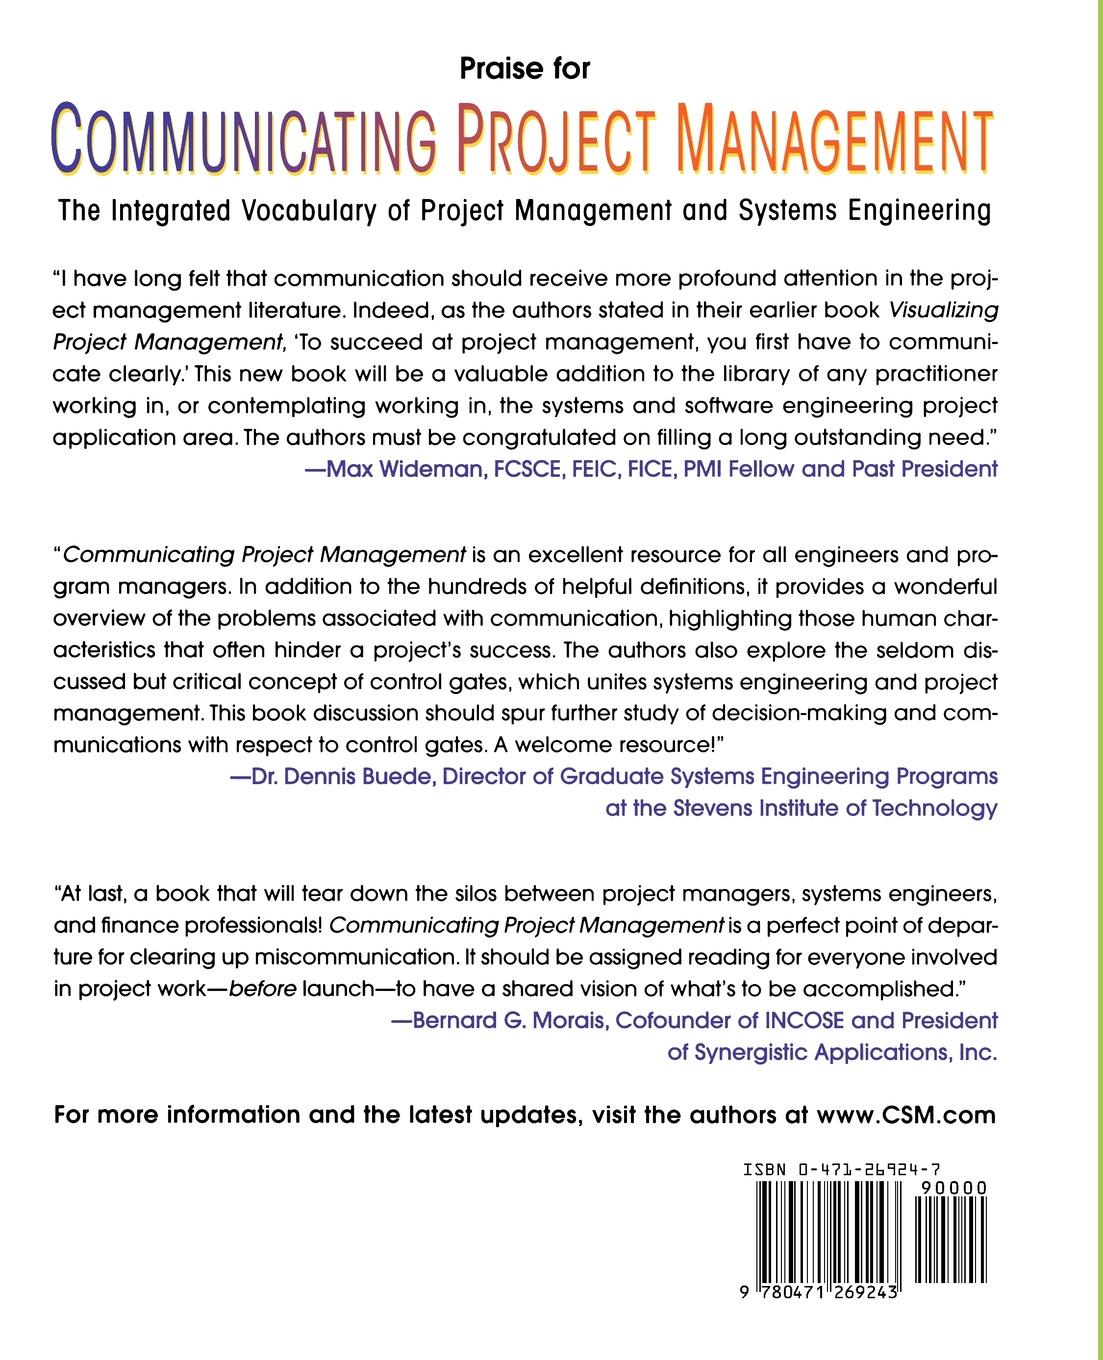 Hal Mooz, Kevin Forsberg, Howard Cotterman Communicating Project Management. The Integrated Vocabulary of Project Management and Systems Engineering